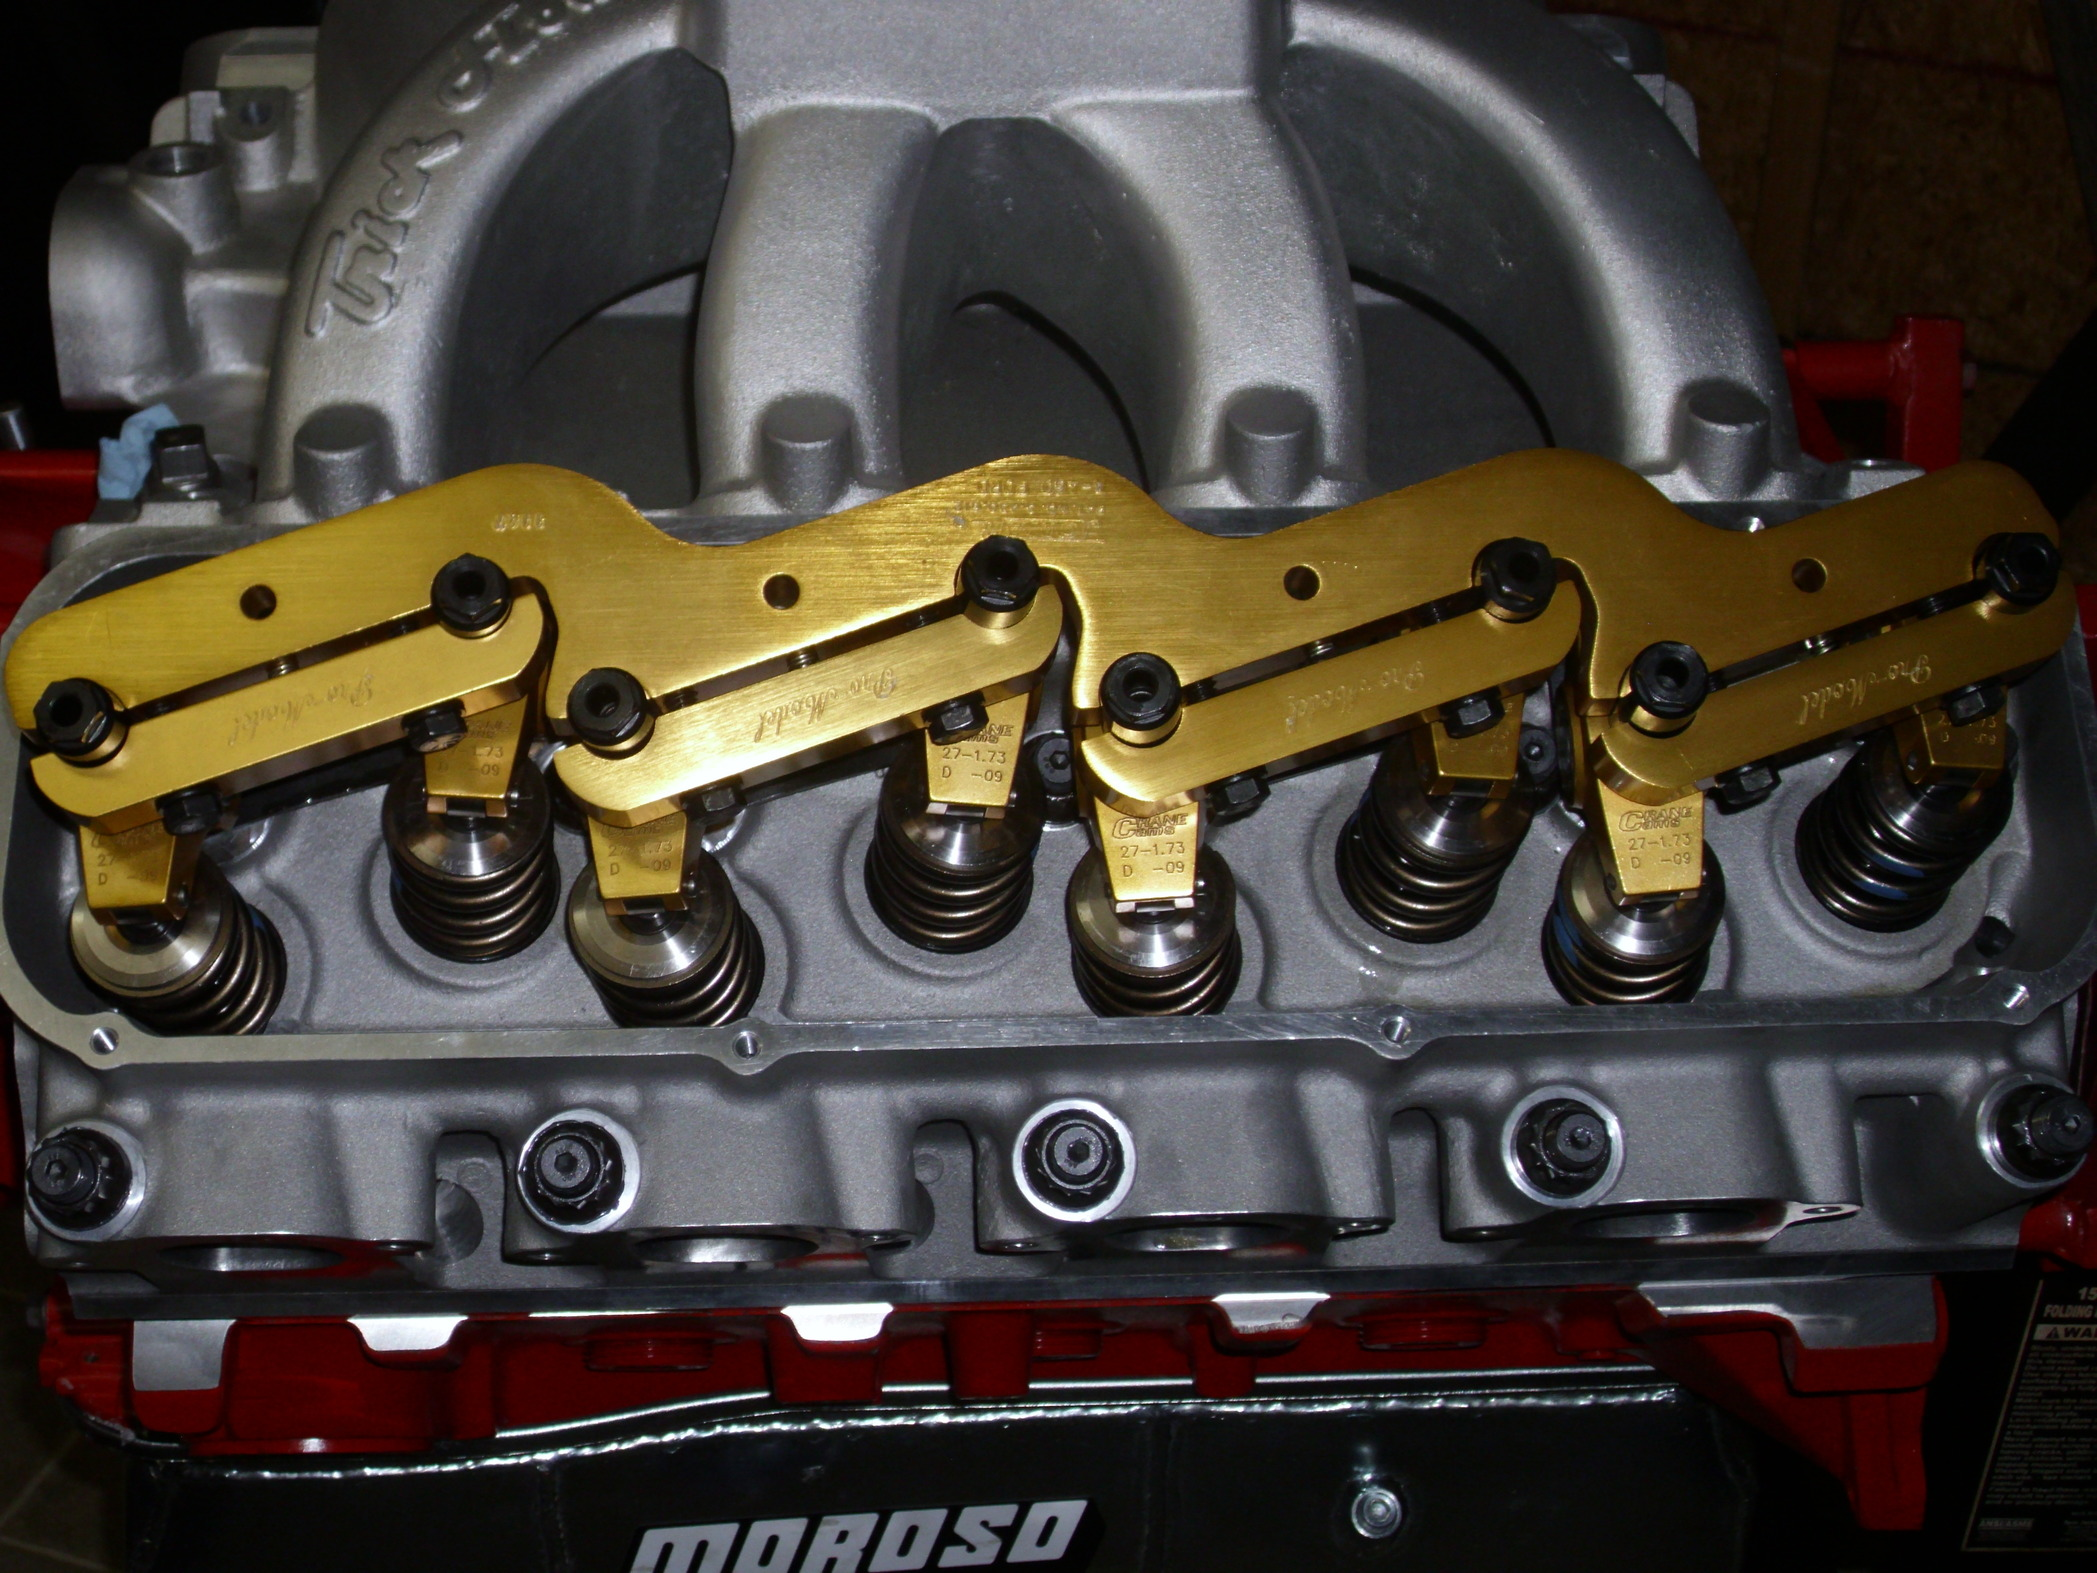 580ci a460 head & a 460 block HPIM0350